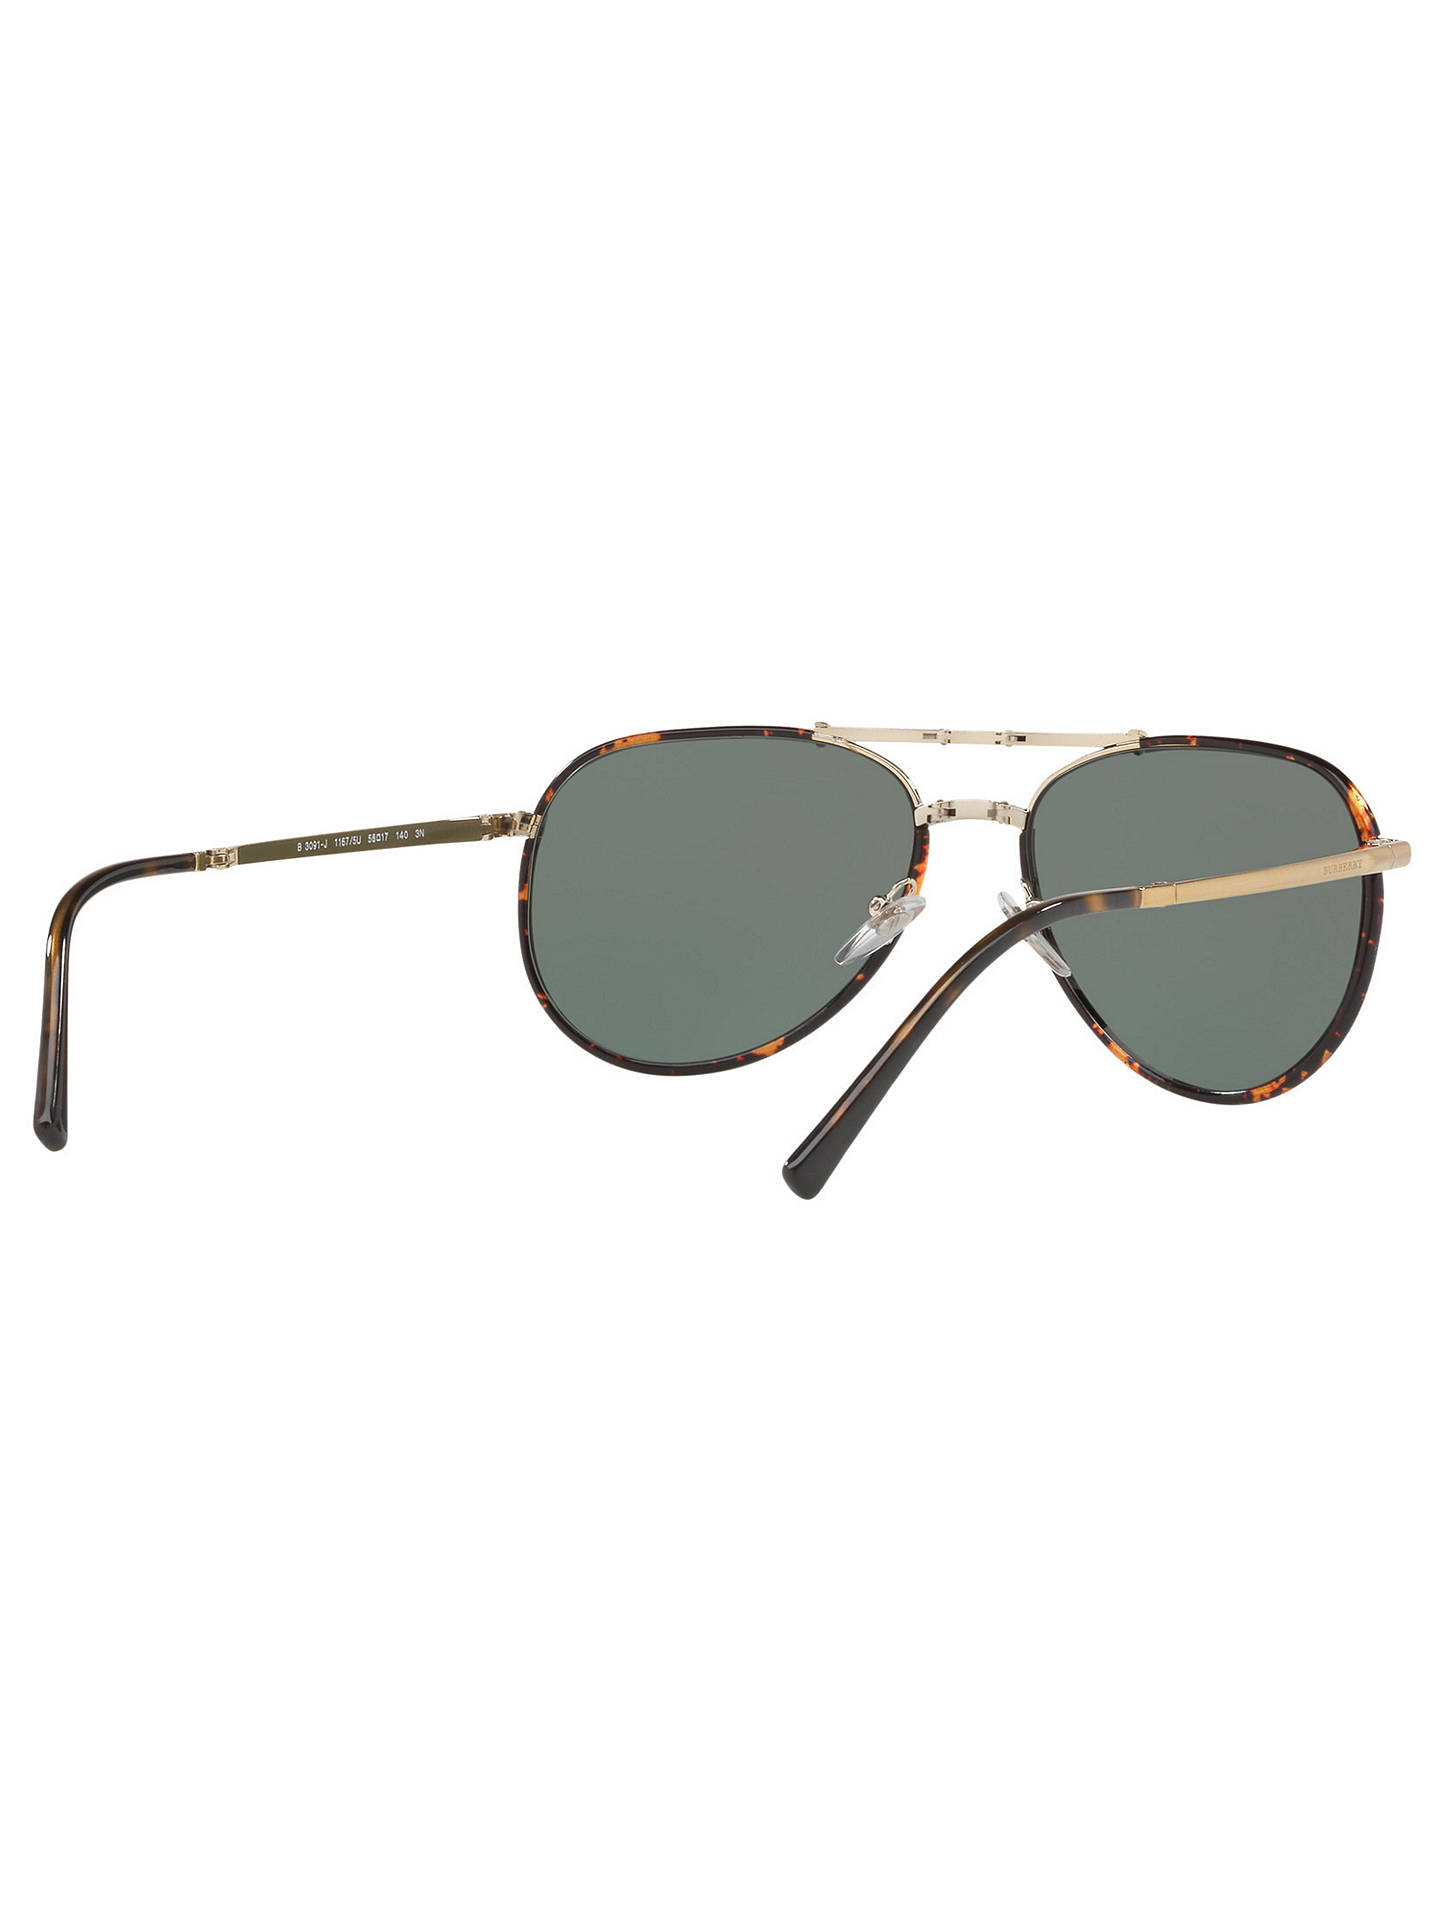 BuyBurberry BE3091J Aviator Sunglasses, Tortoise/Black Online at johnlewis.com